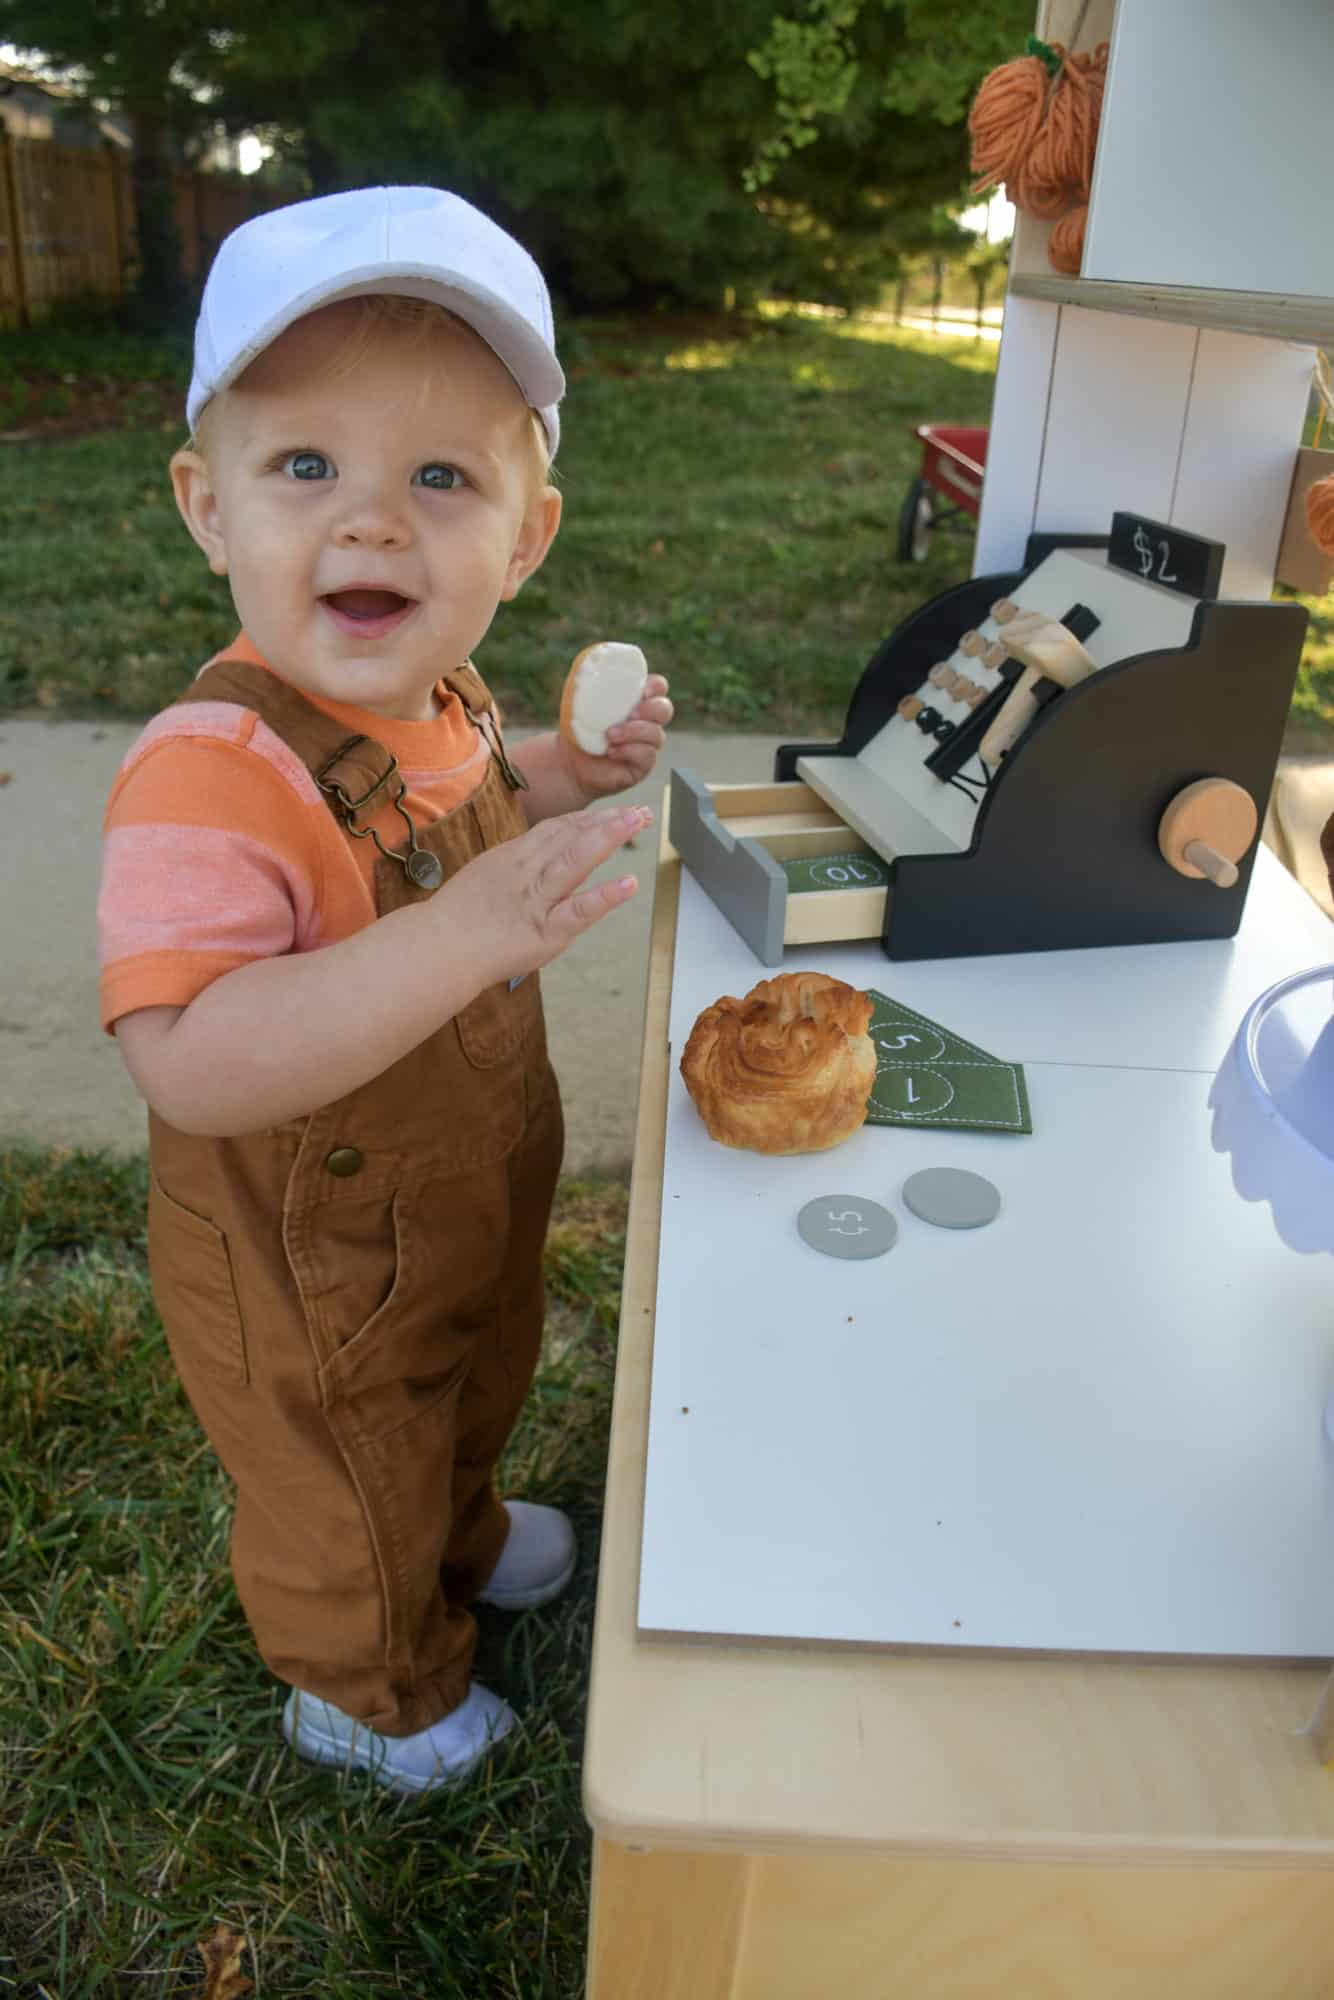 Child holding a cookie and playing with a toy cash register.